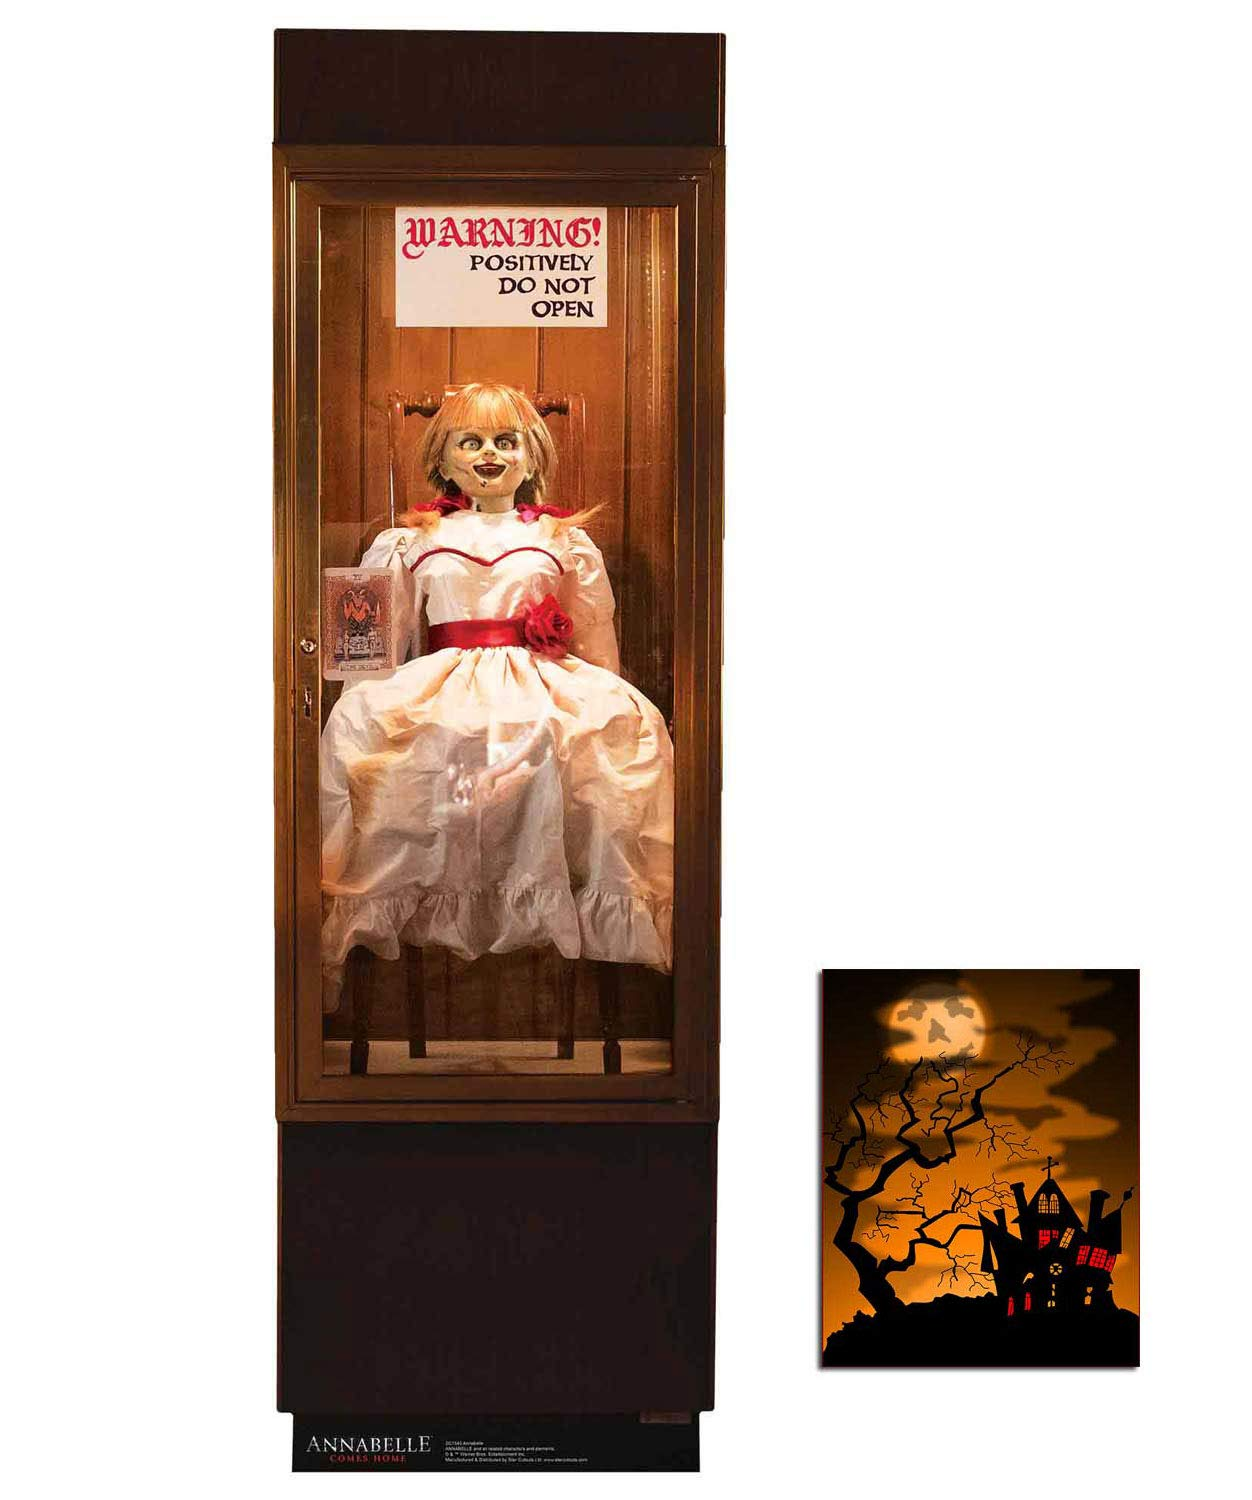 The Conjuring Official Cardboard Cutout//Standup of Annabelle Sat in Glass Case 177cm x 56cm and includes 8x10 photo